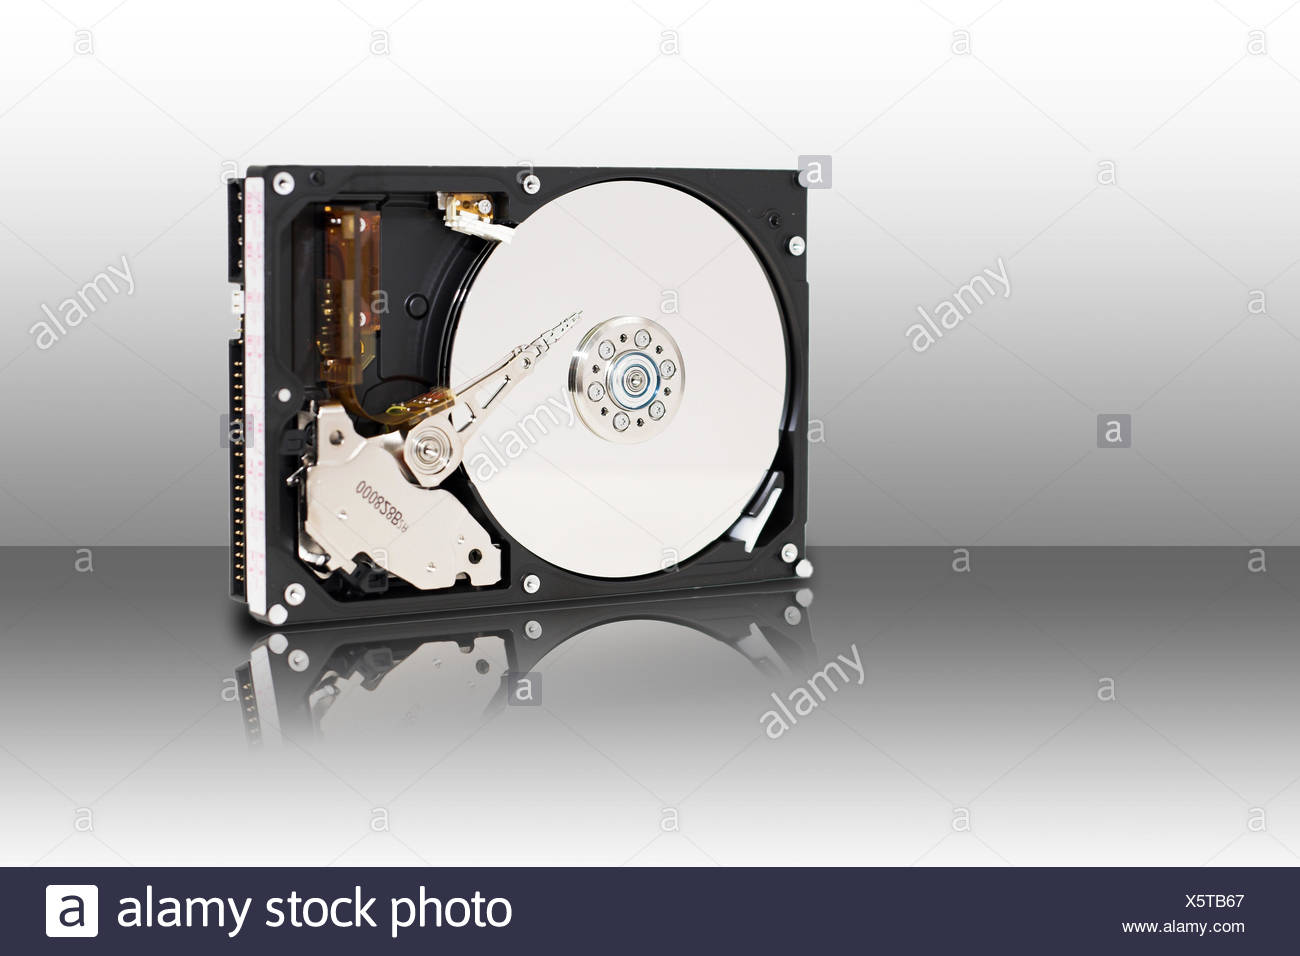 hdd Stock Photo